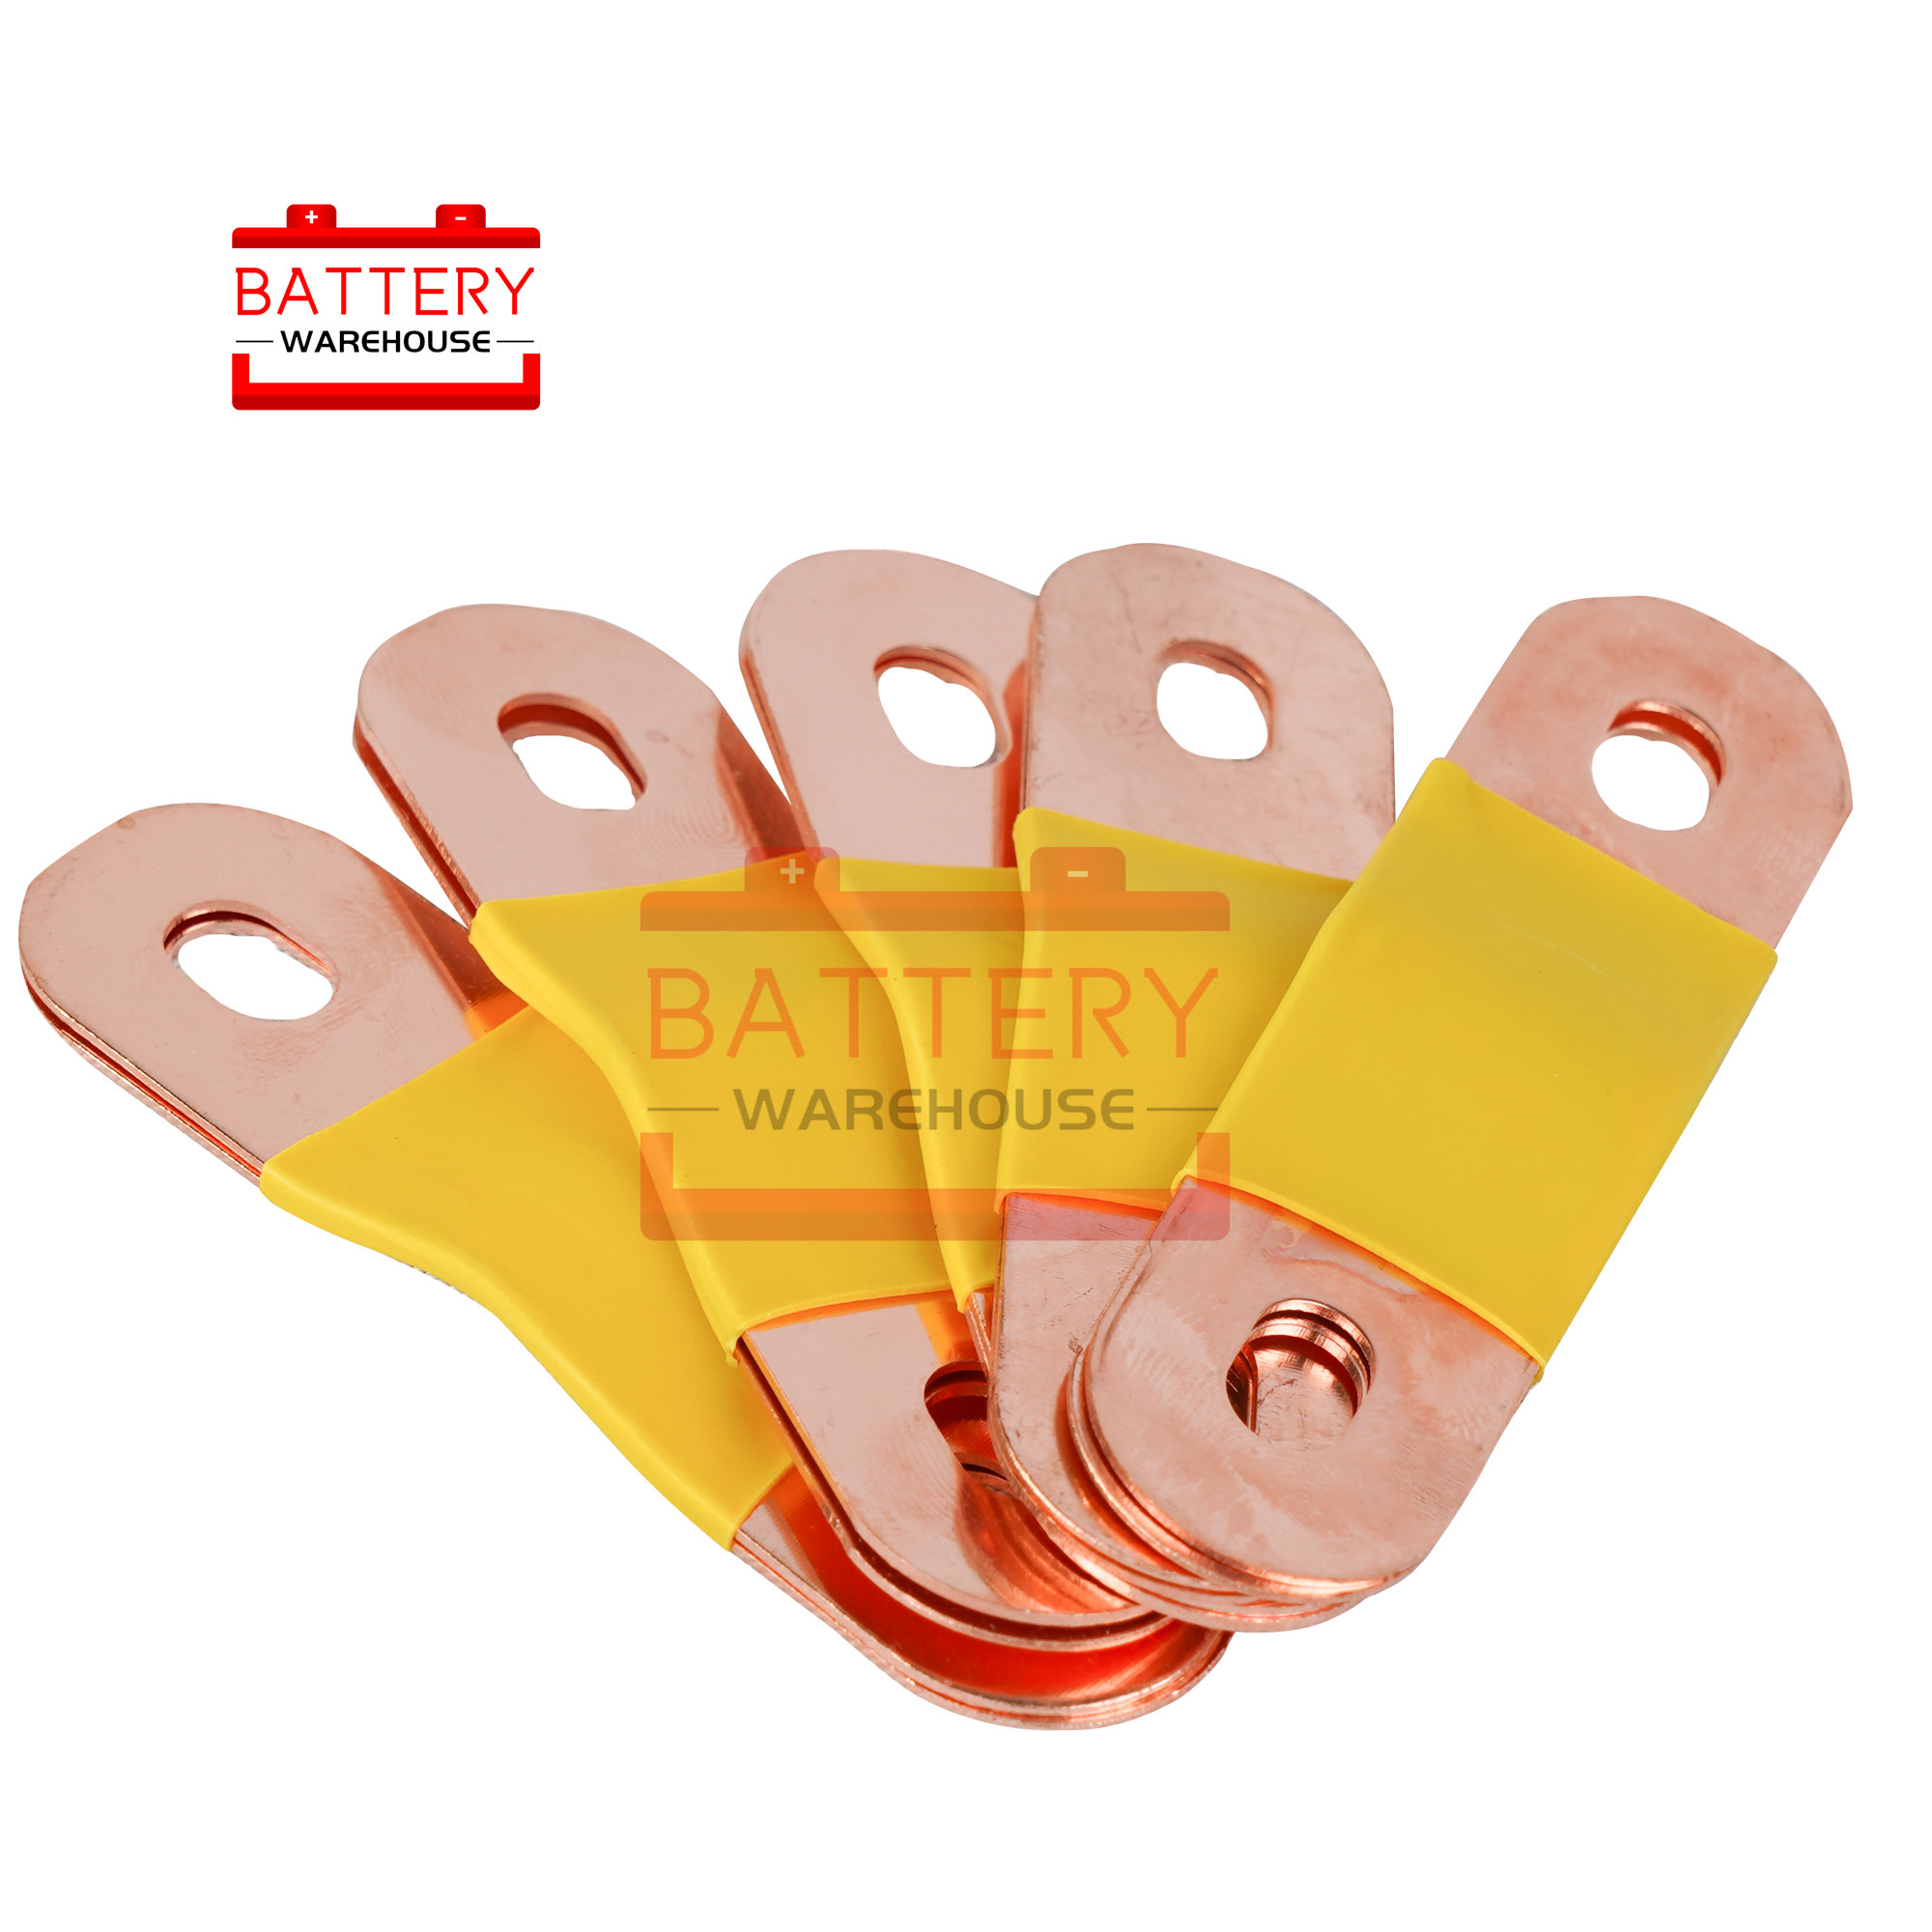 Copper Bus Bar cell to cell For <font><b>lithium</b></font> 3.7V CATL 3.2V 3.7V <font><b>12V</b></font> 24v 48V lifepo4 <font><b>battery</b></font> 100AH 120AH <font><b>150AH</b></font> 200AH 300AH 400AH image